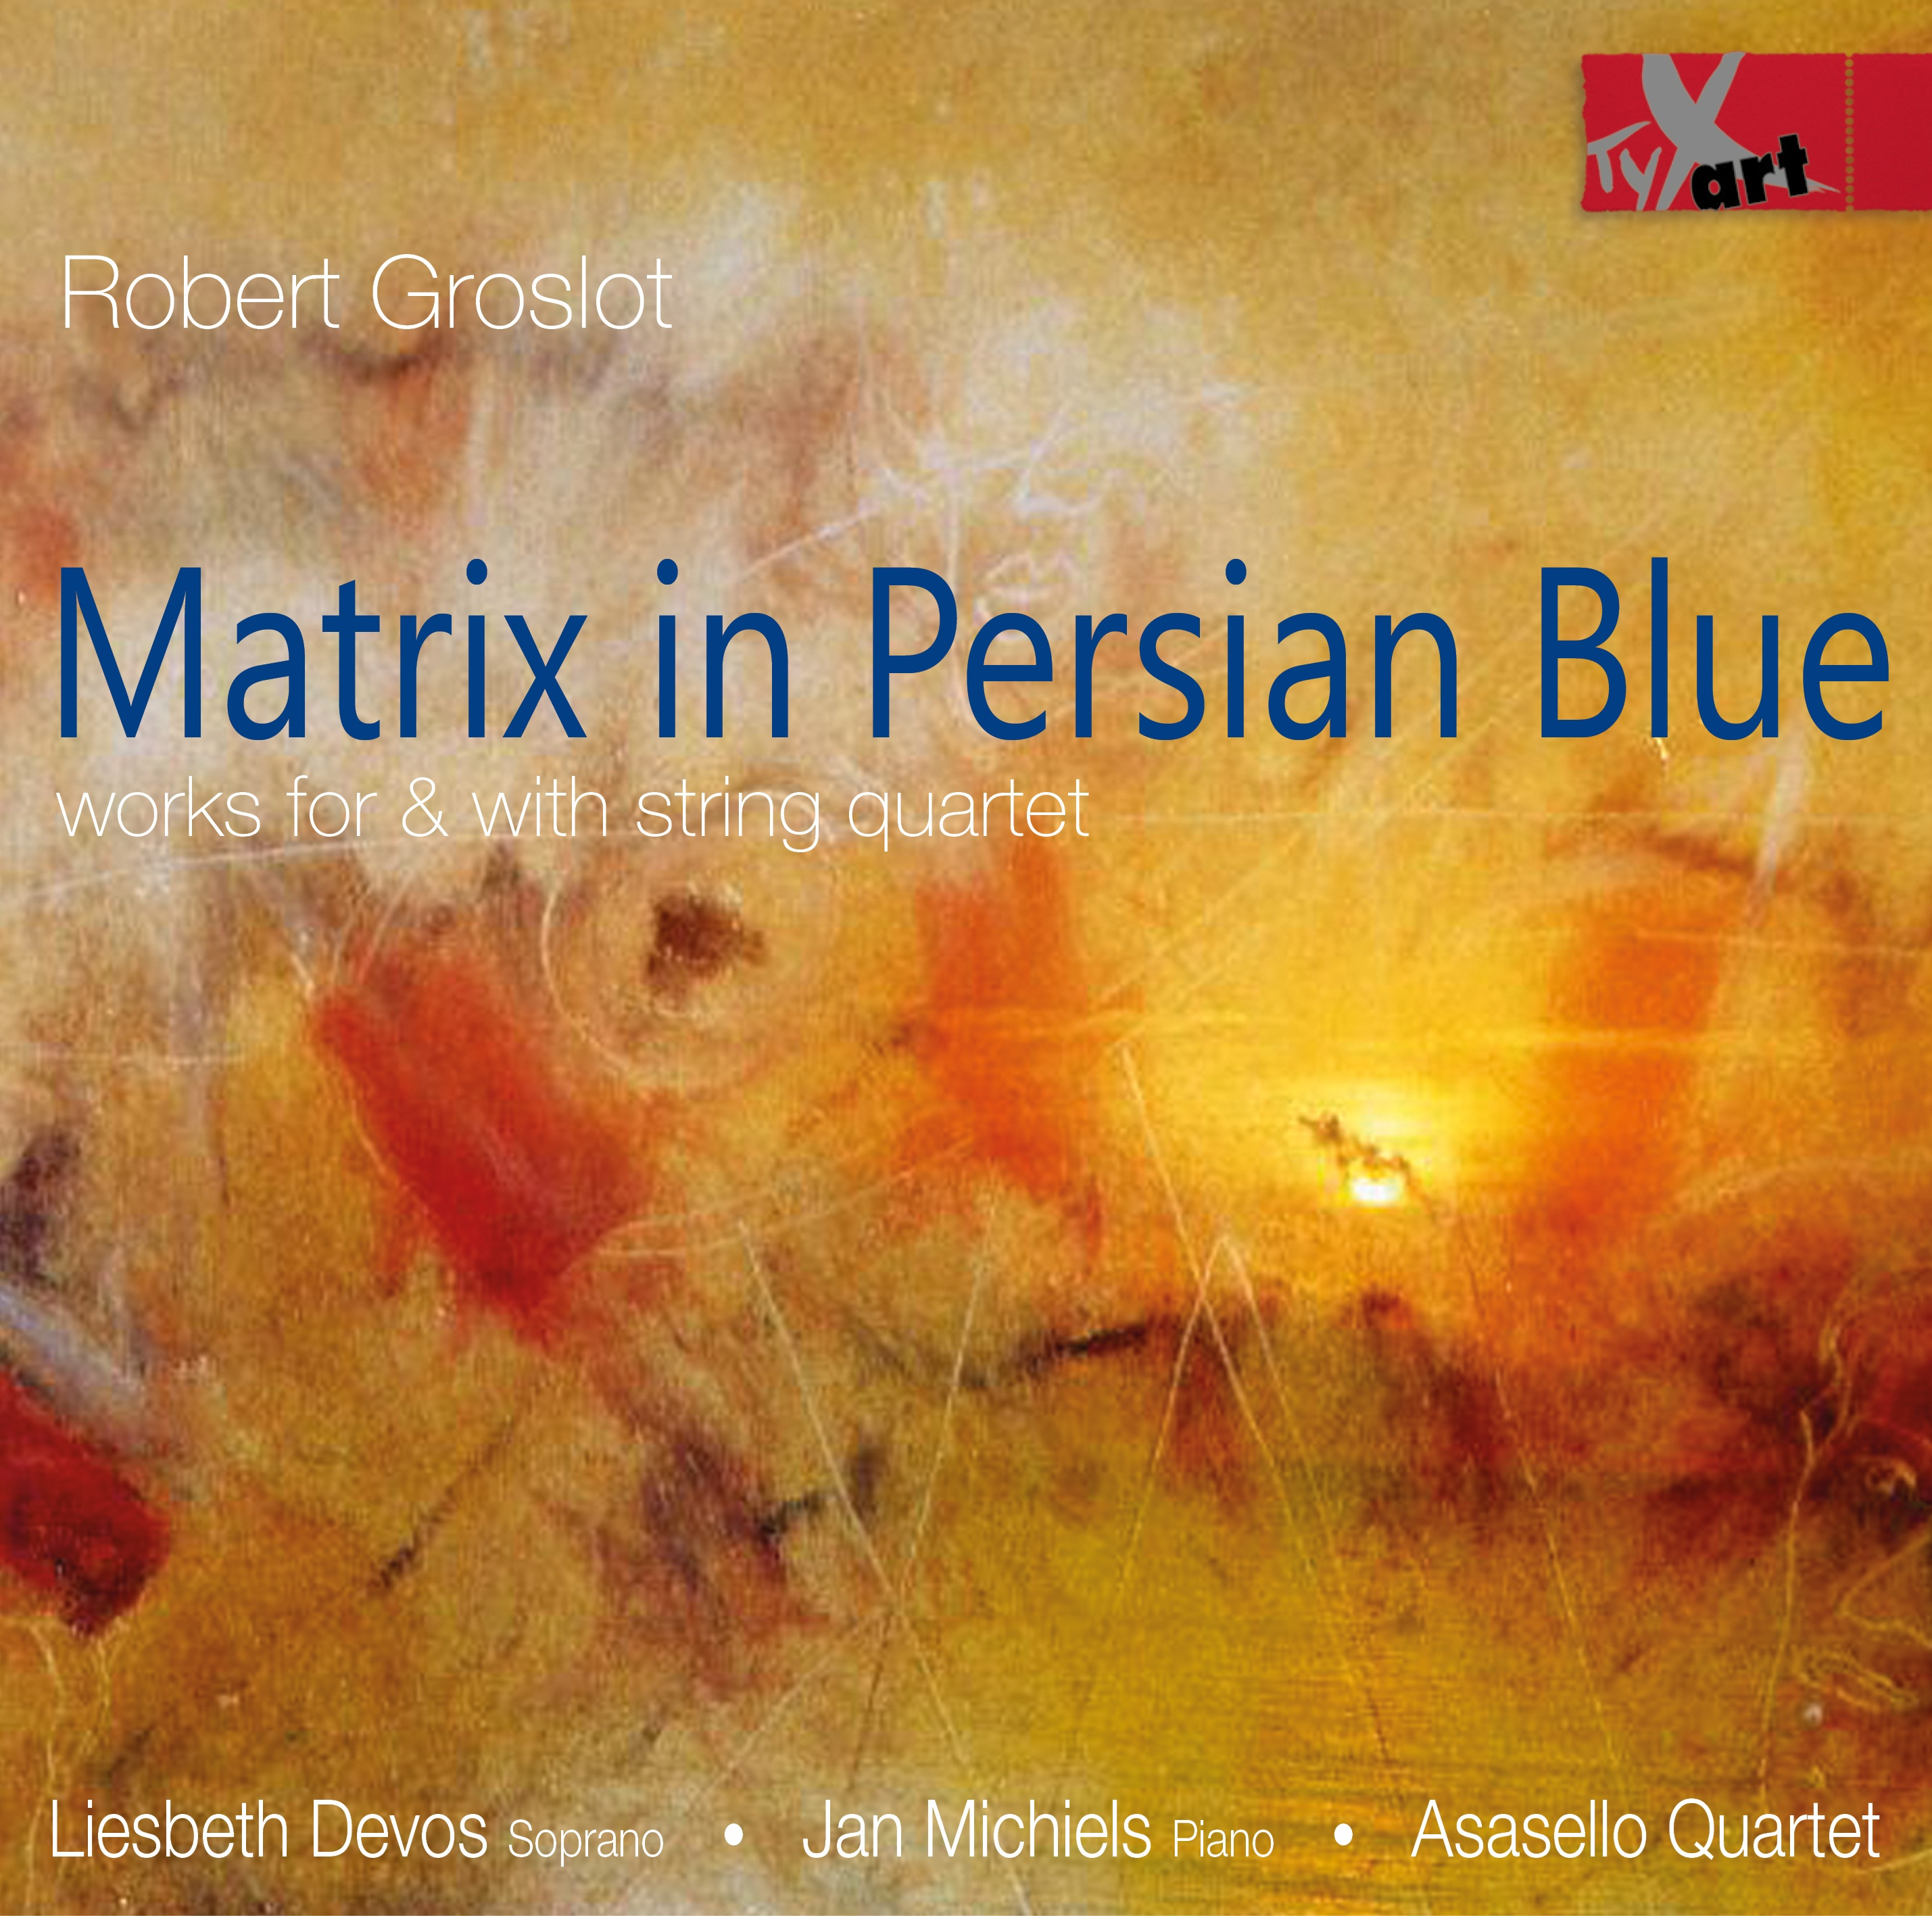 Robert Groslot: Matrix in Persian Blue